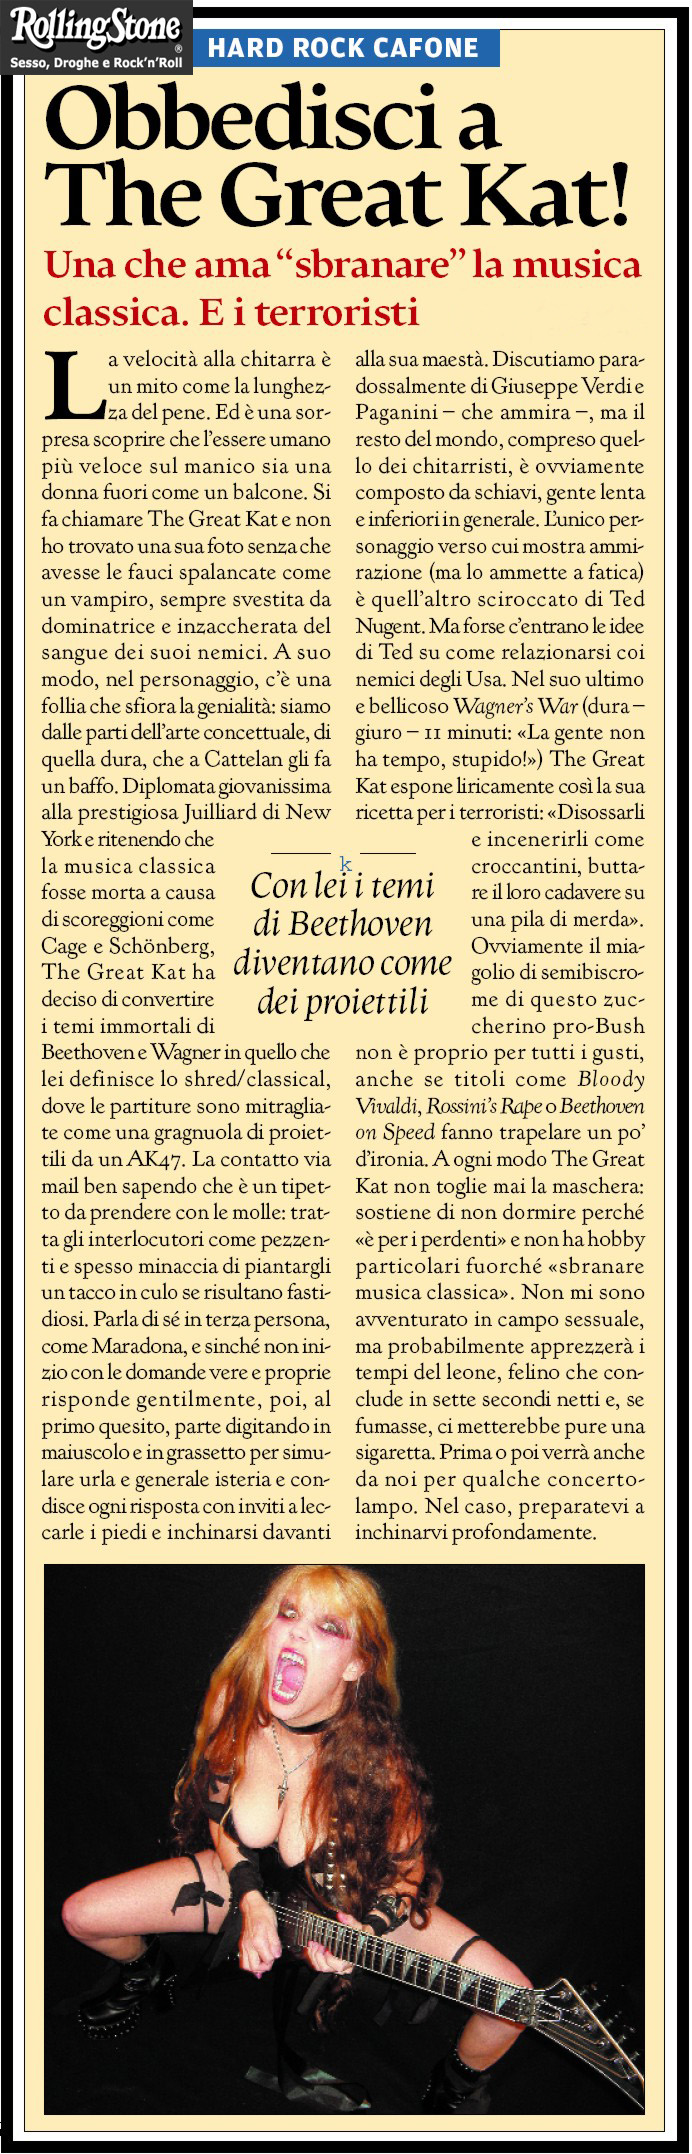 ROLLING STONE MAGAZINE (ITALY) INTERVIEW with THE GREAT KAT!